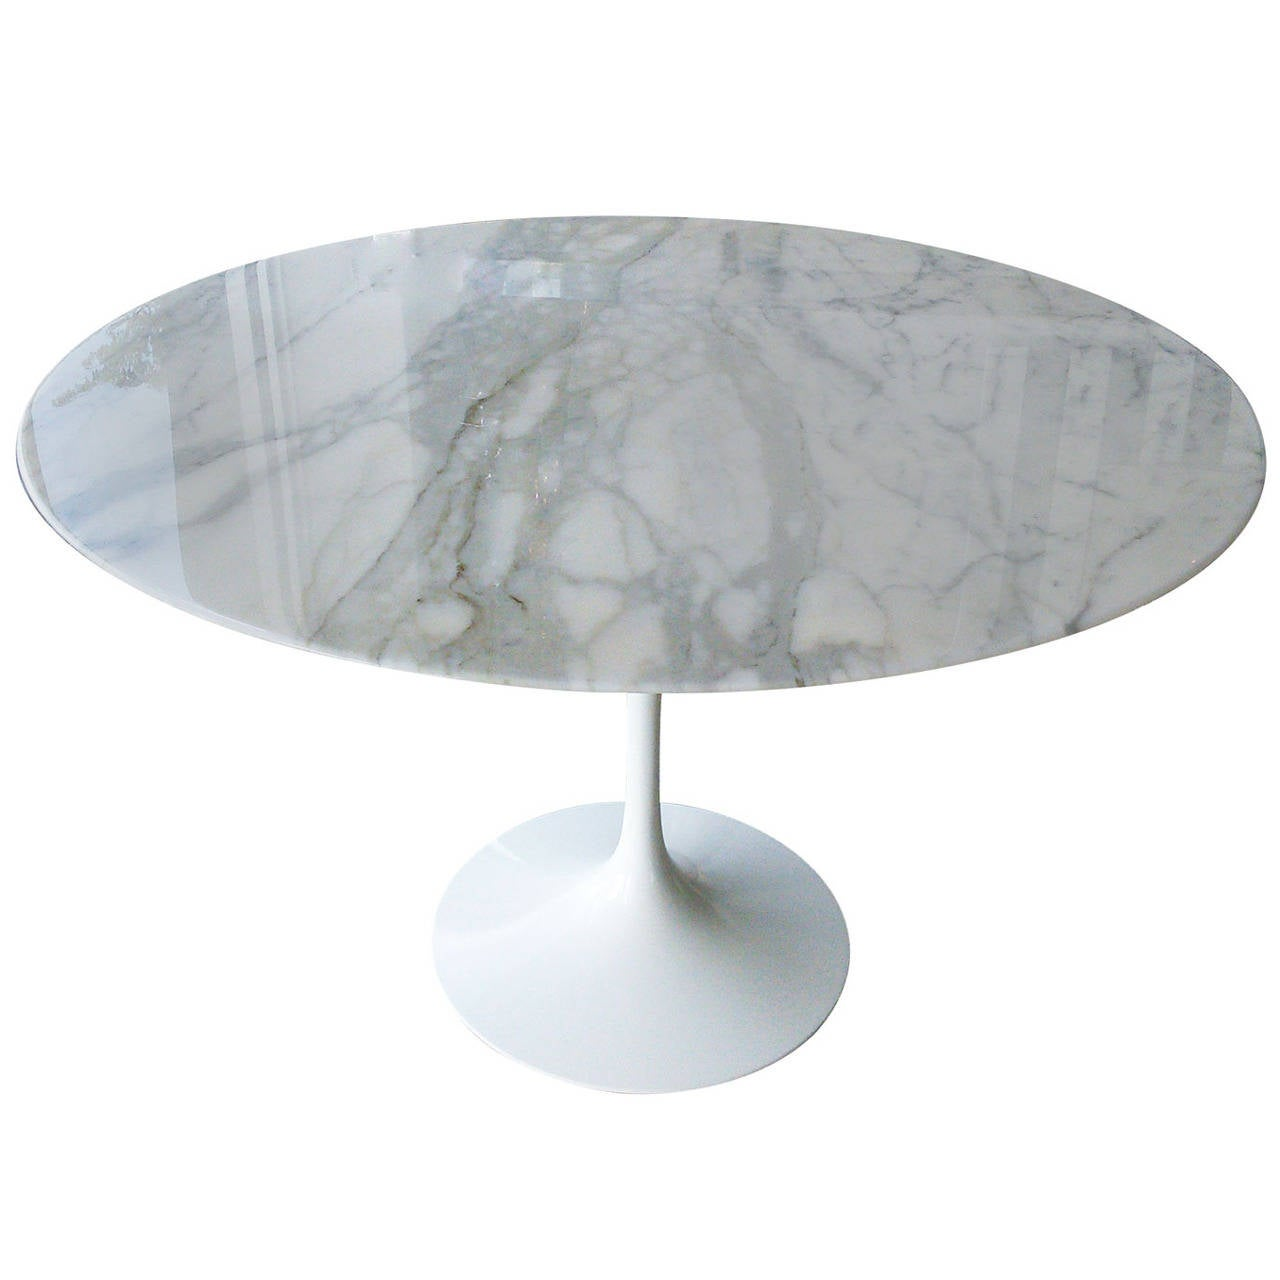 tulip table and chairs nz luxury office melbourne eero saarinen for knoll white marble dining at 1stdibs